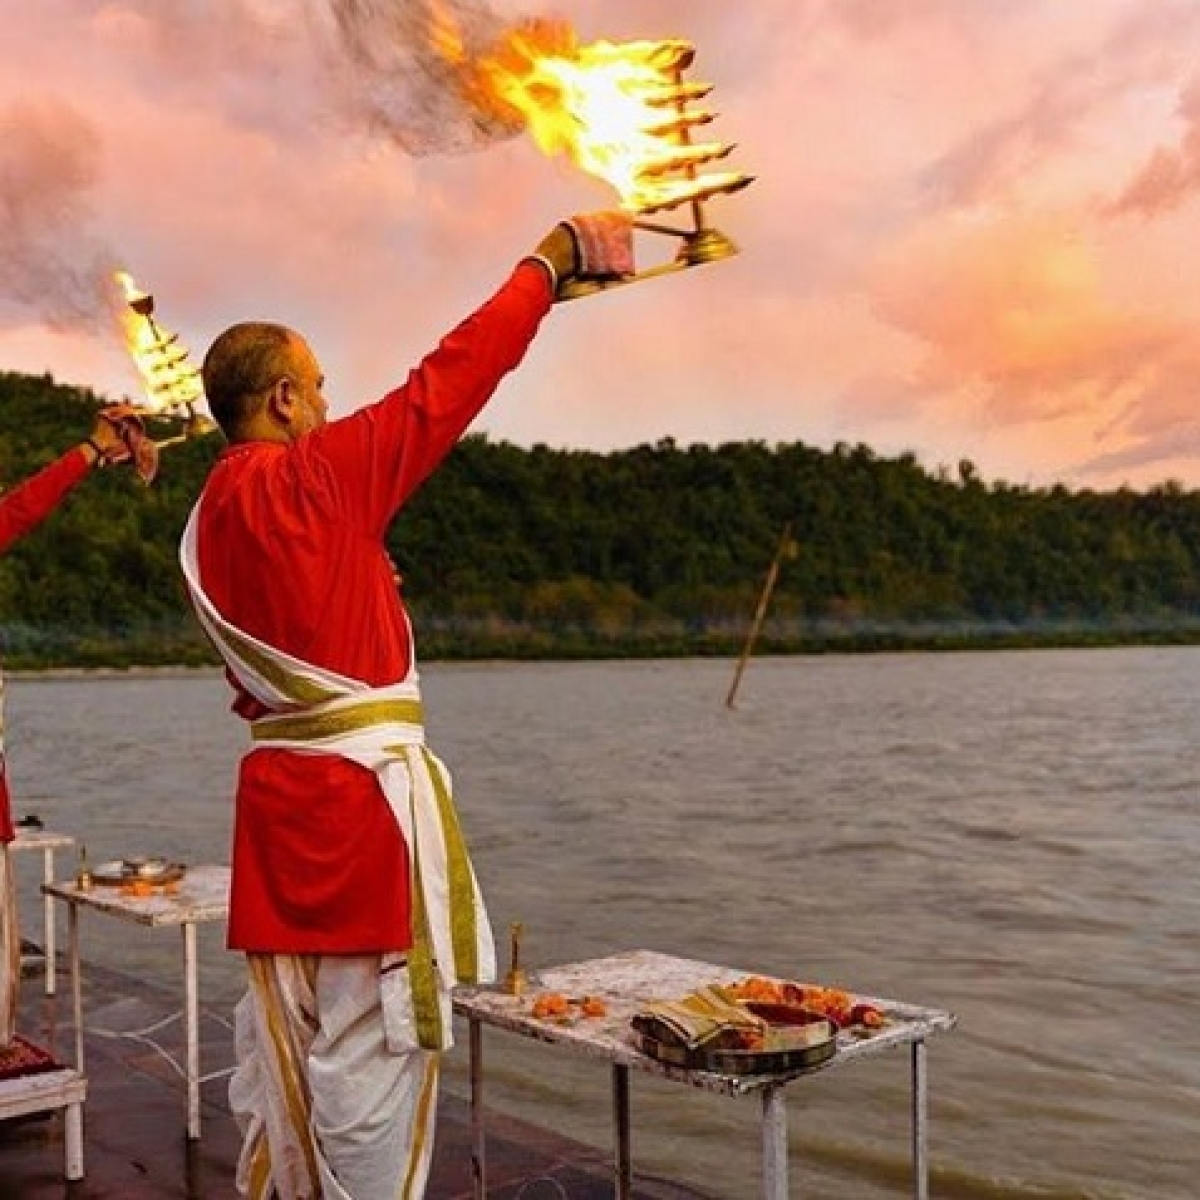 Guiding Light: Ganga: A Symbol of Purity and Holiness